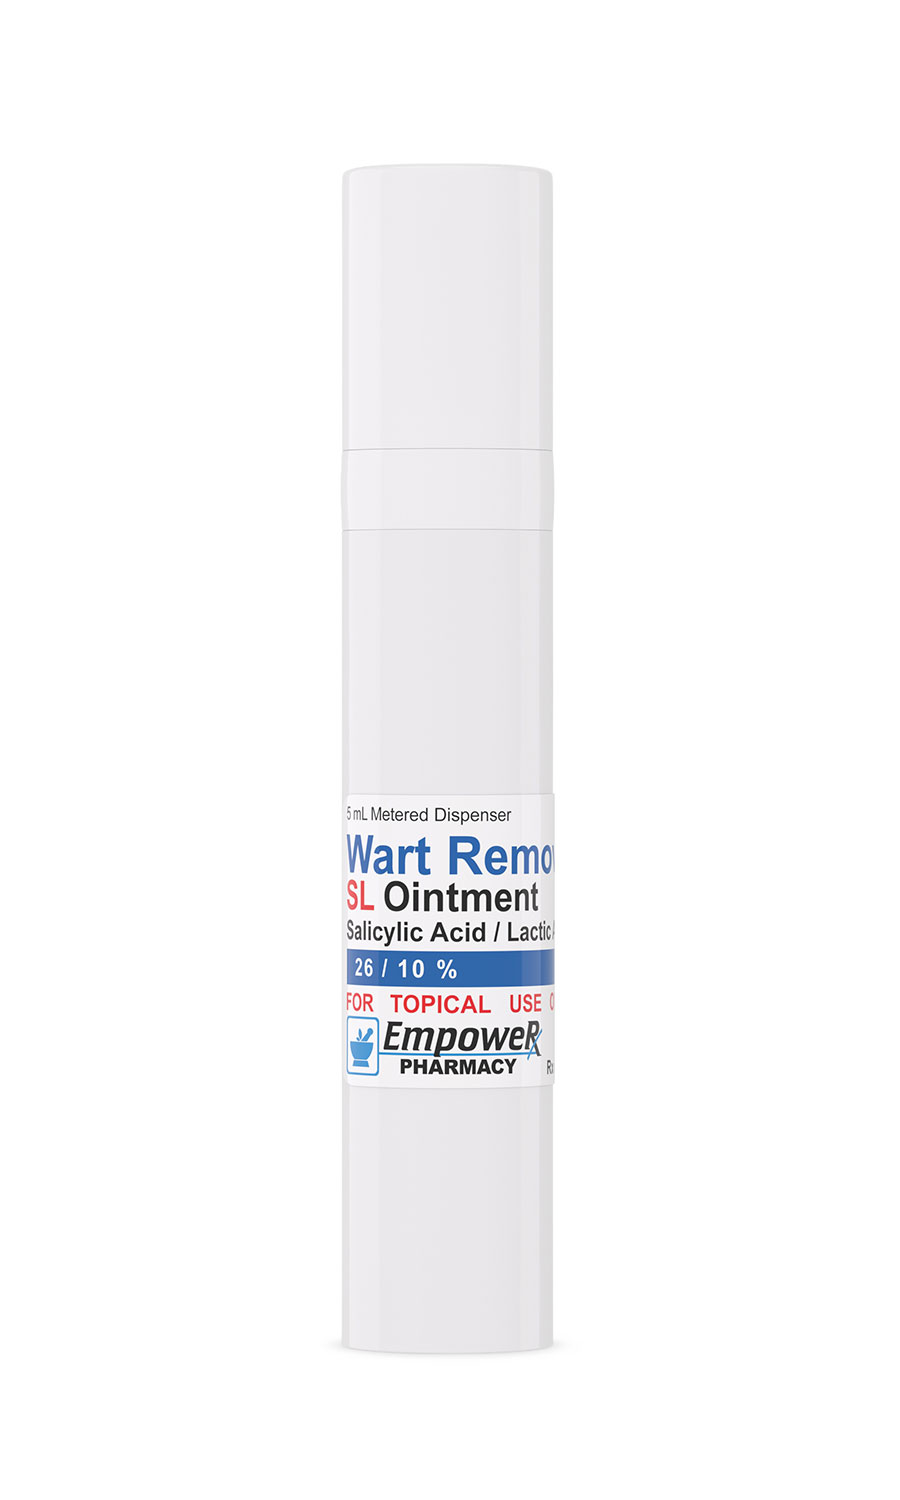 Wart Remove SL Ointment